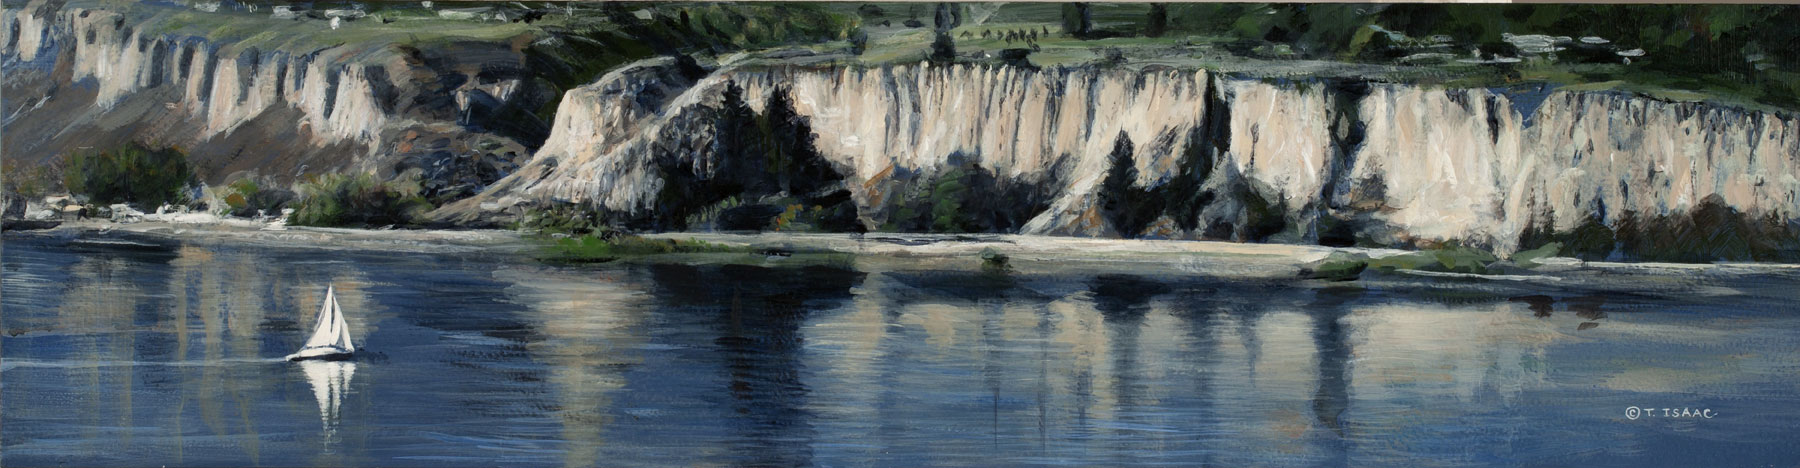 Okanagan Summer - Terry Isaac